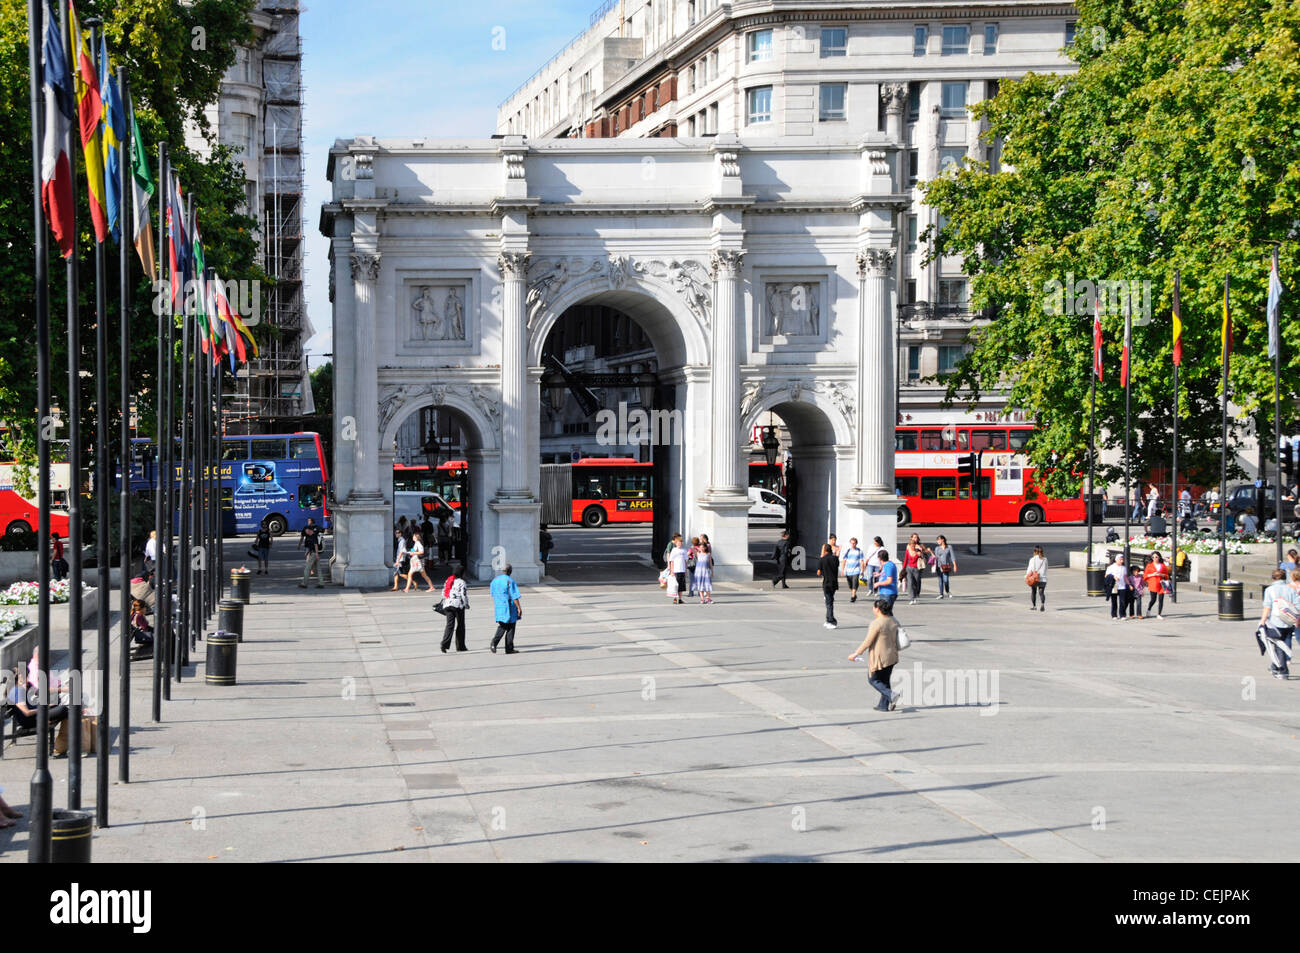 Tourists at Marble Arch19th century white marble faced triumphal arch in middle of major road traffic roundabout - Stock Image